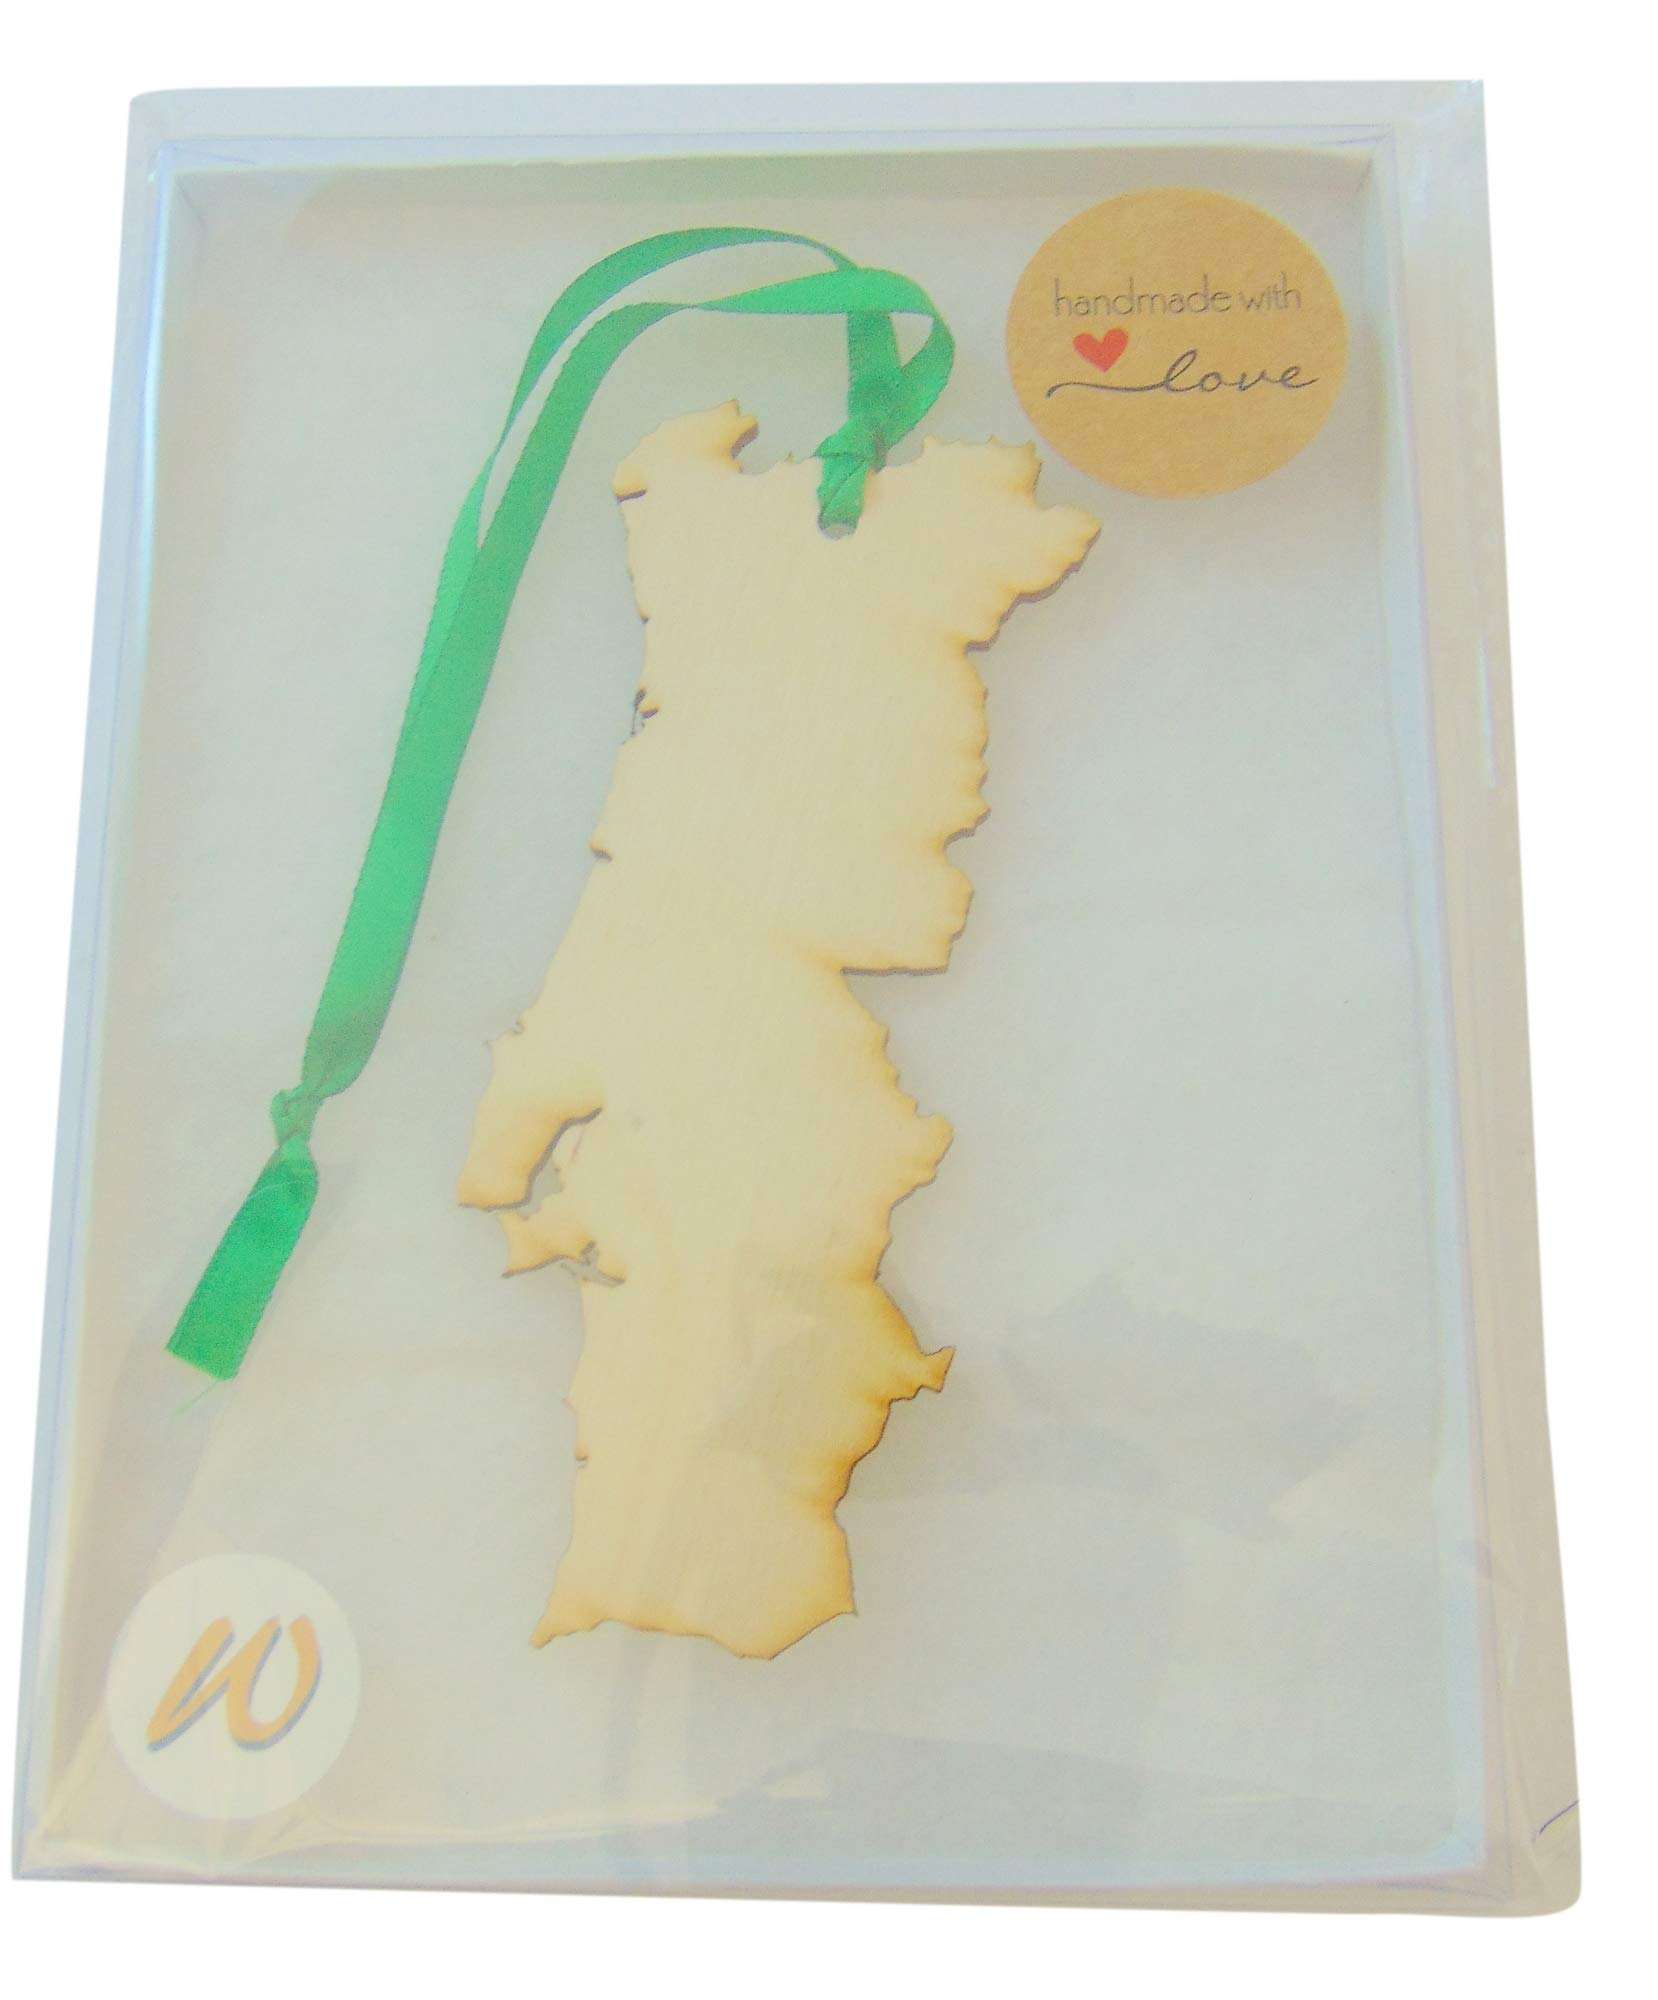 Portugal Christmas Wood Ornament Boxed Portuguese Map Wooden Decoration Handmade in The USA by Westman Works (Image #2)